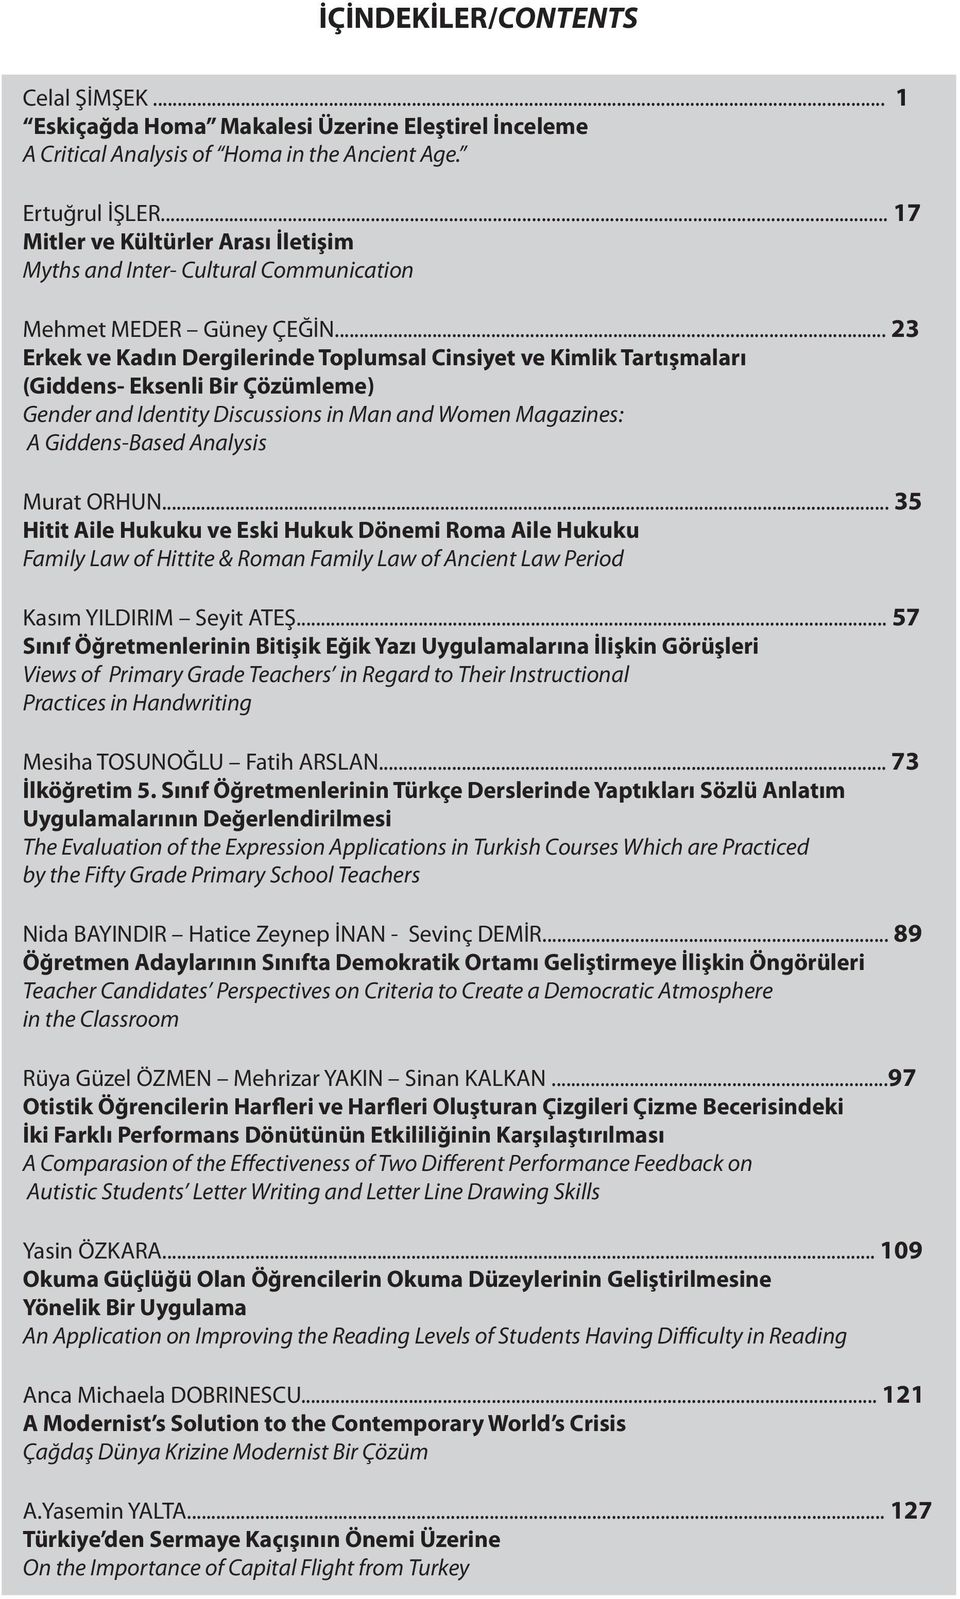 .. 23 Erkek ve Kadın Dergilerinde Toplumsal Cinsiyet ve Kimlik Tartışmaları (Giddens- Eksenli Bir Çözümleme) Gender and Identity Discussions in Man and Women Magazines: A Giddens-Based Analysis Murat